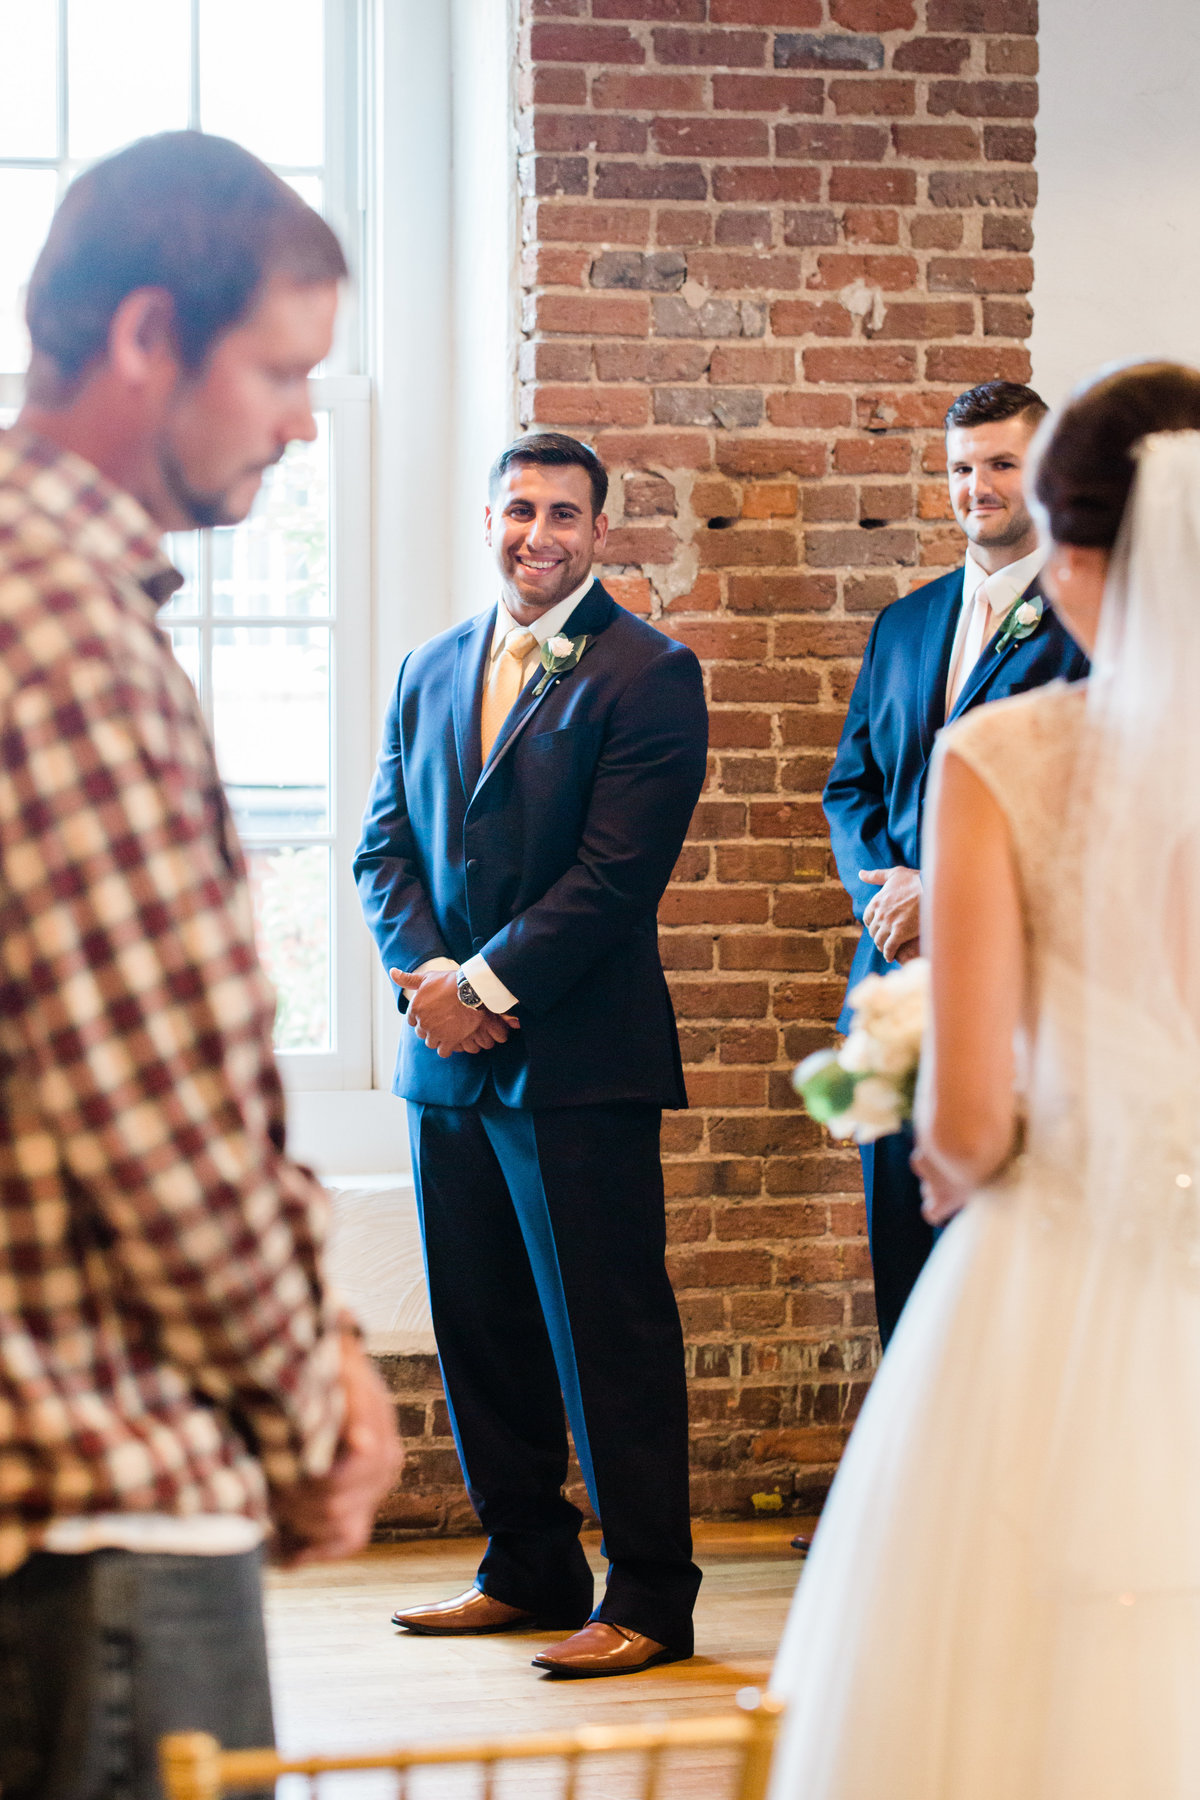 Danielle-Defayette-Photography-Revolution-Mill-Events-Wedding-Greensboro-NC-65